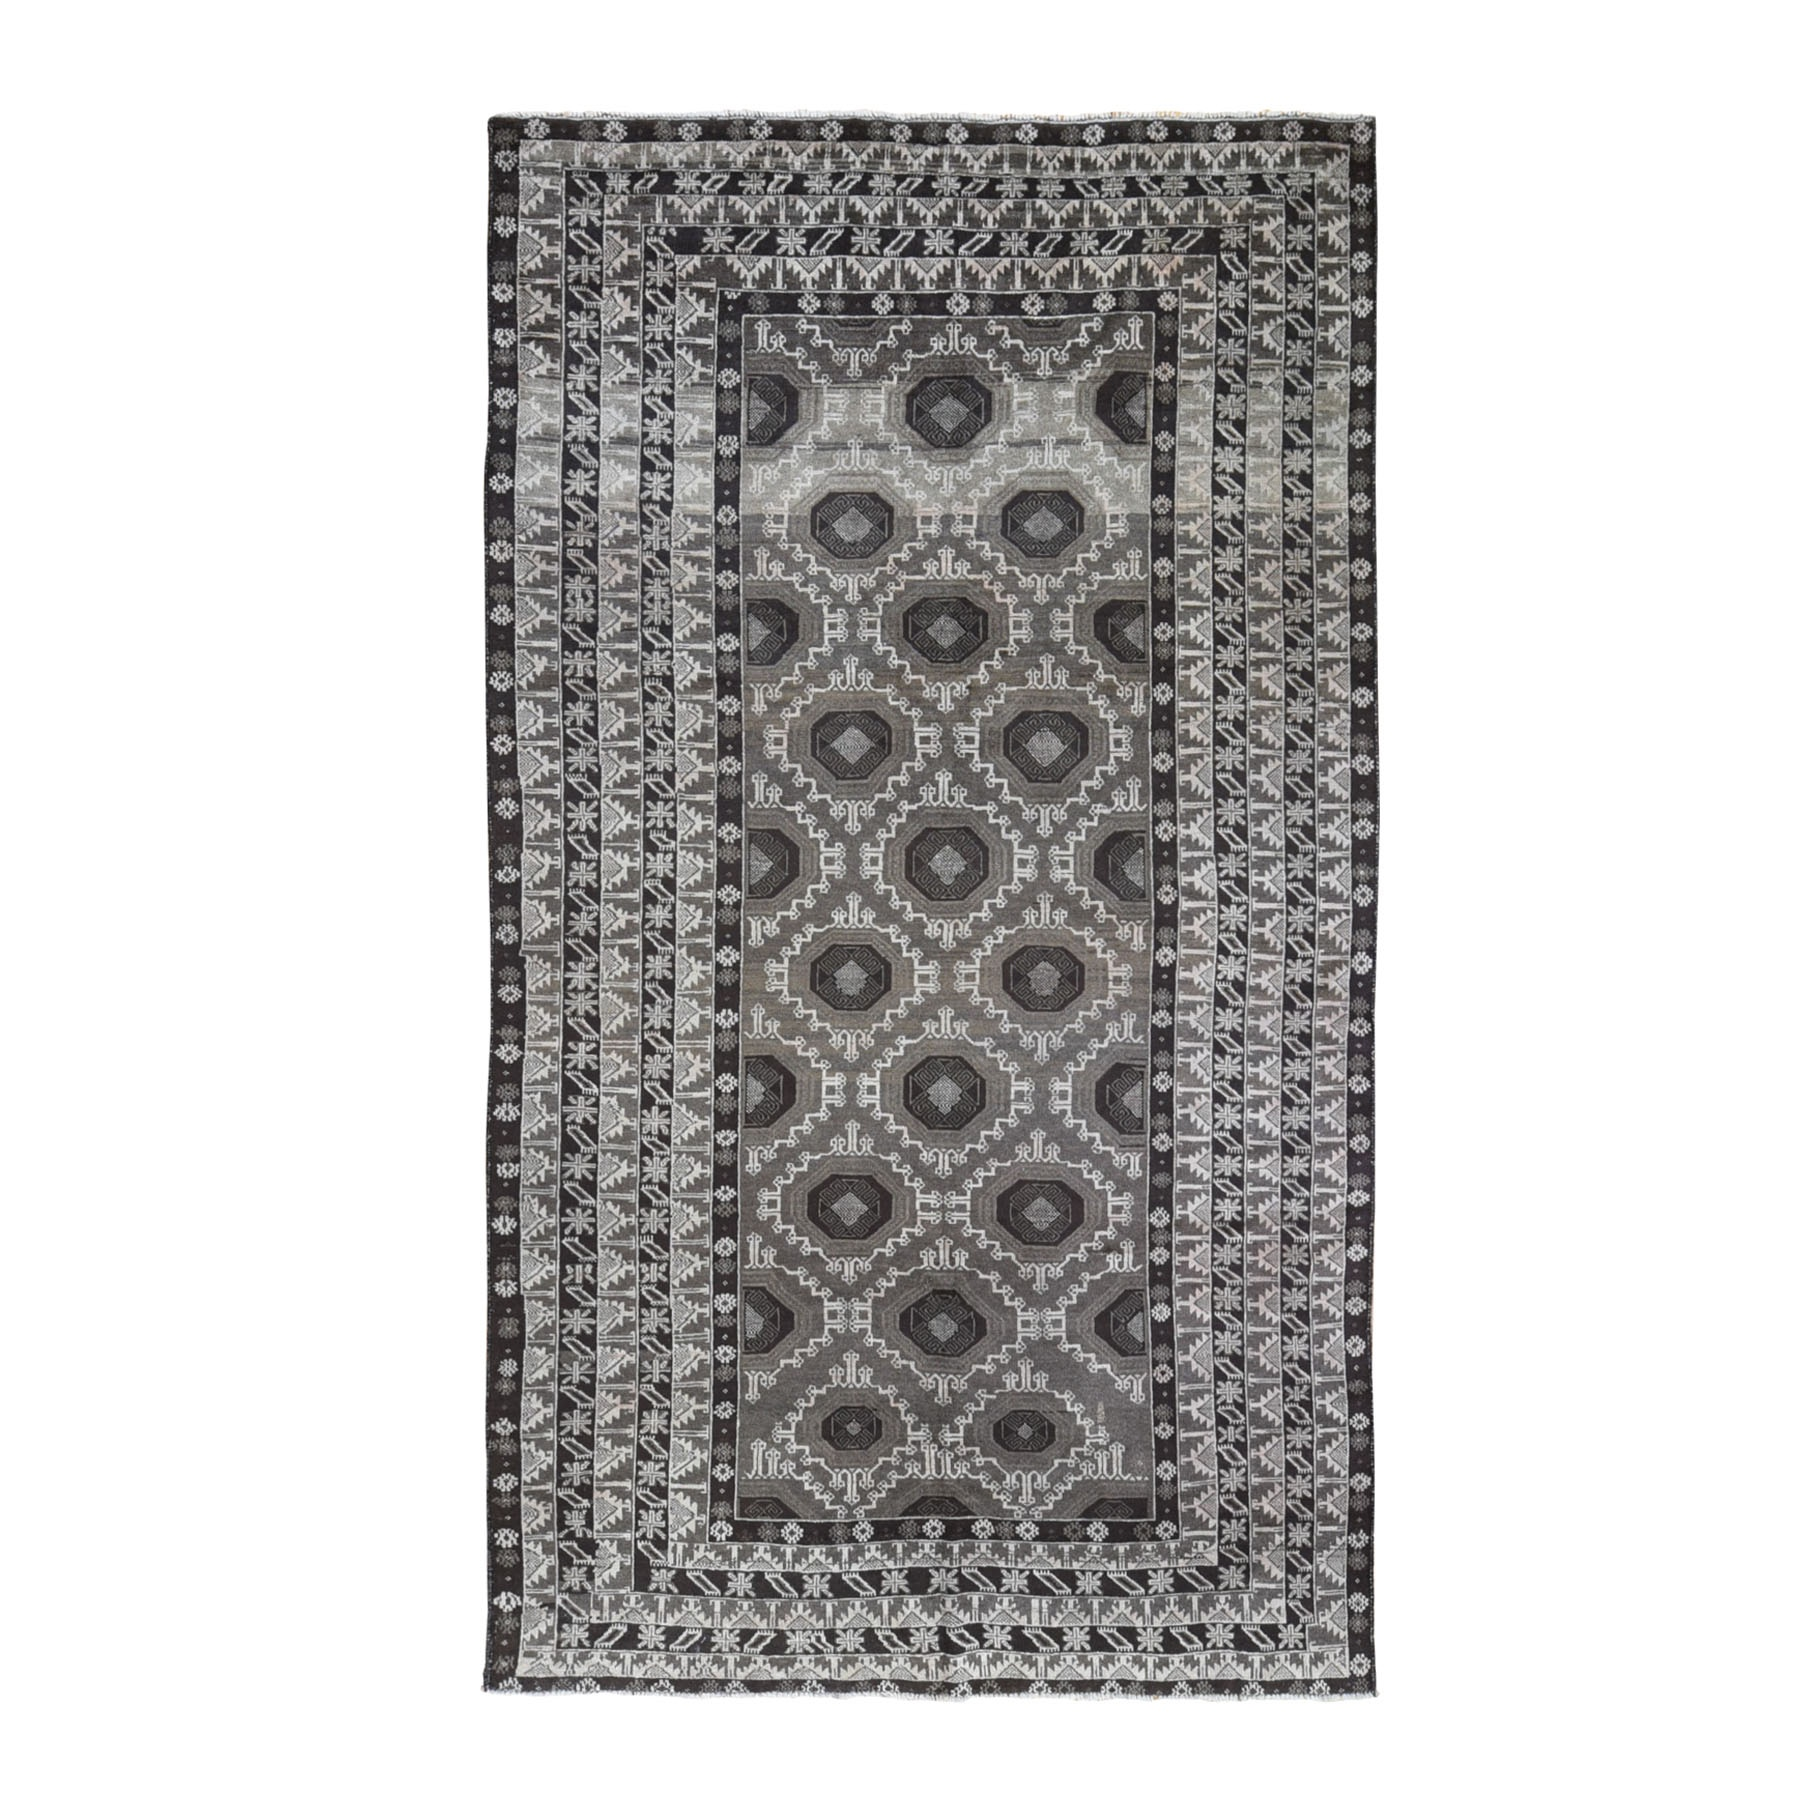 Nomadic And Village Collection Hand Knotted Black Rug No: 1119128